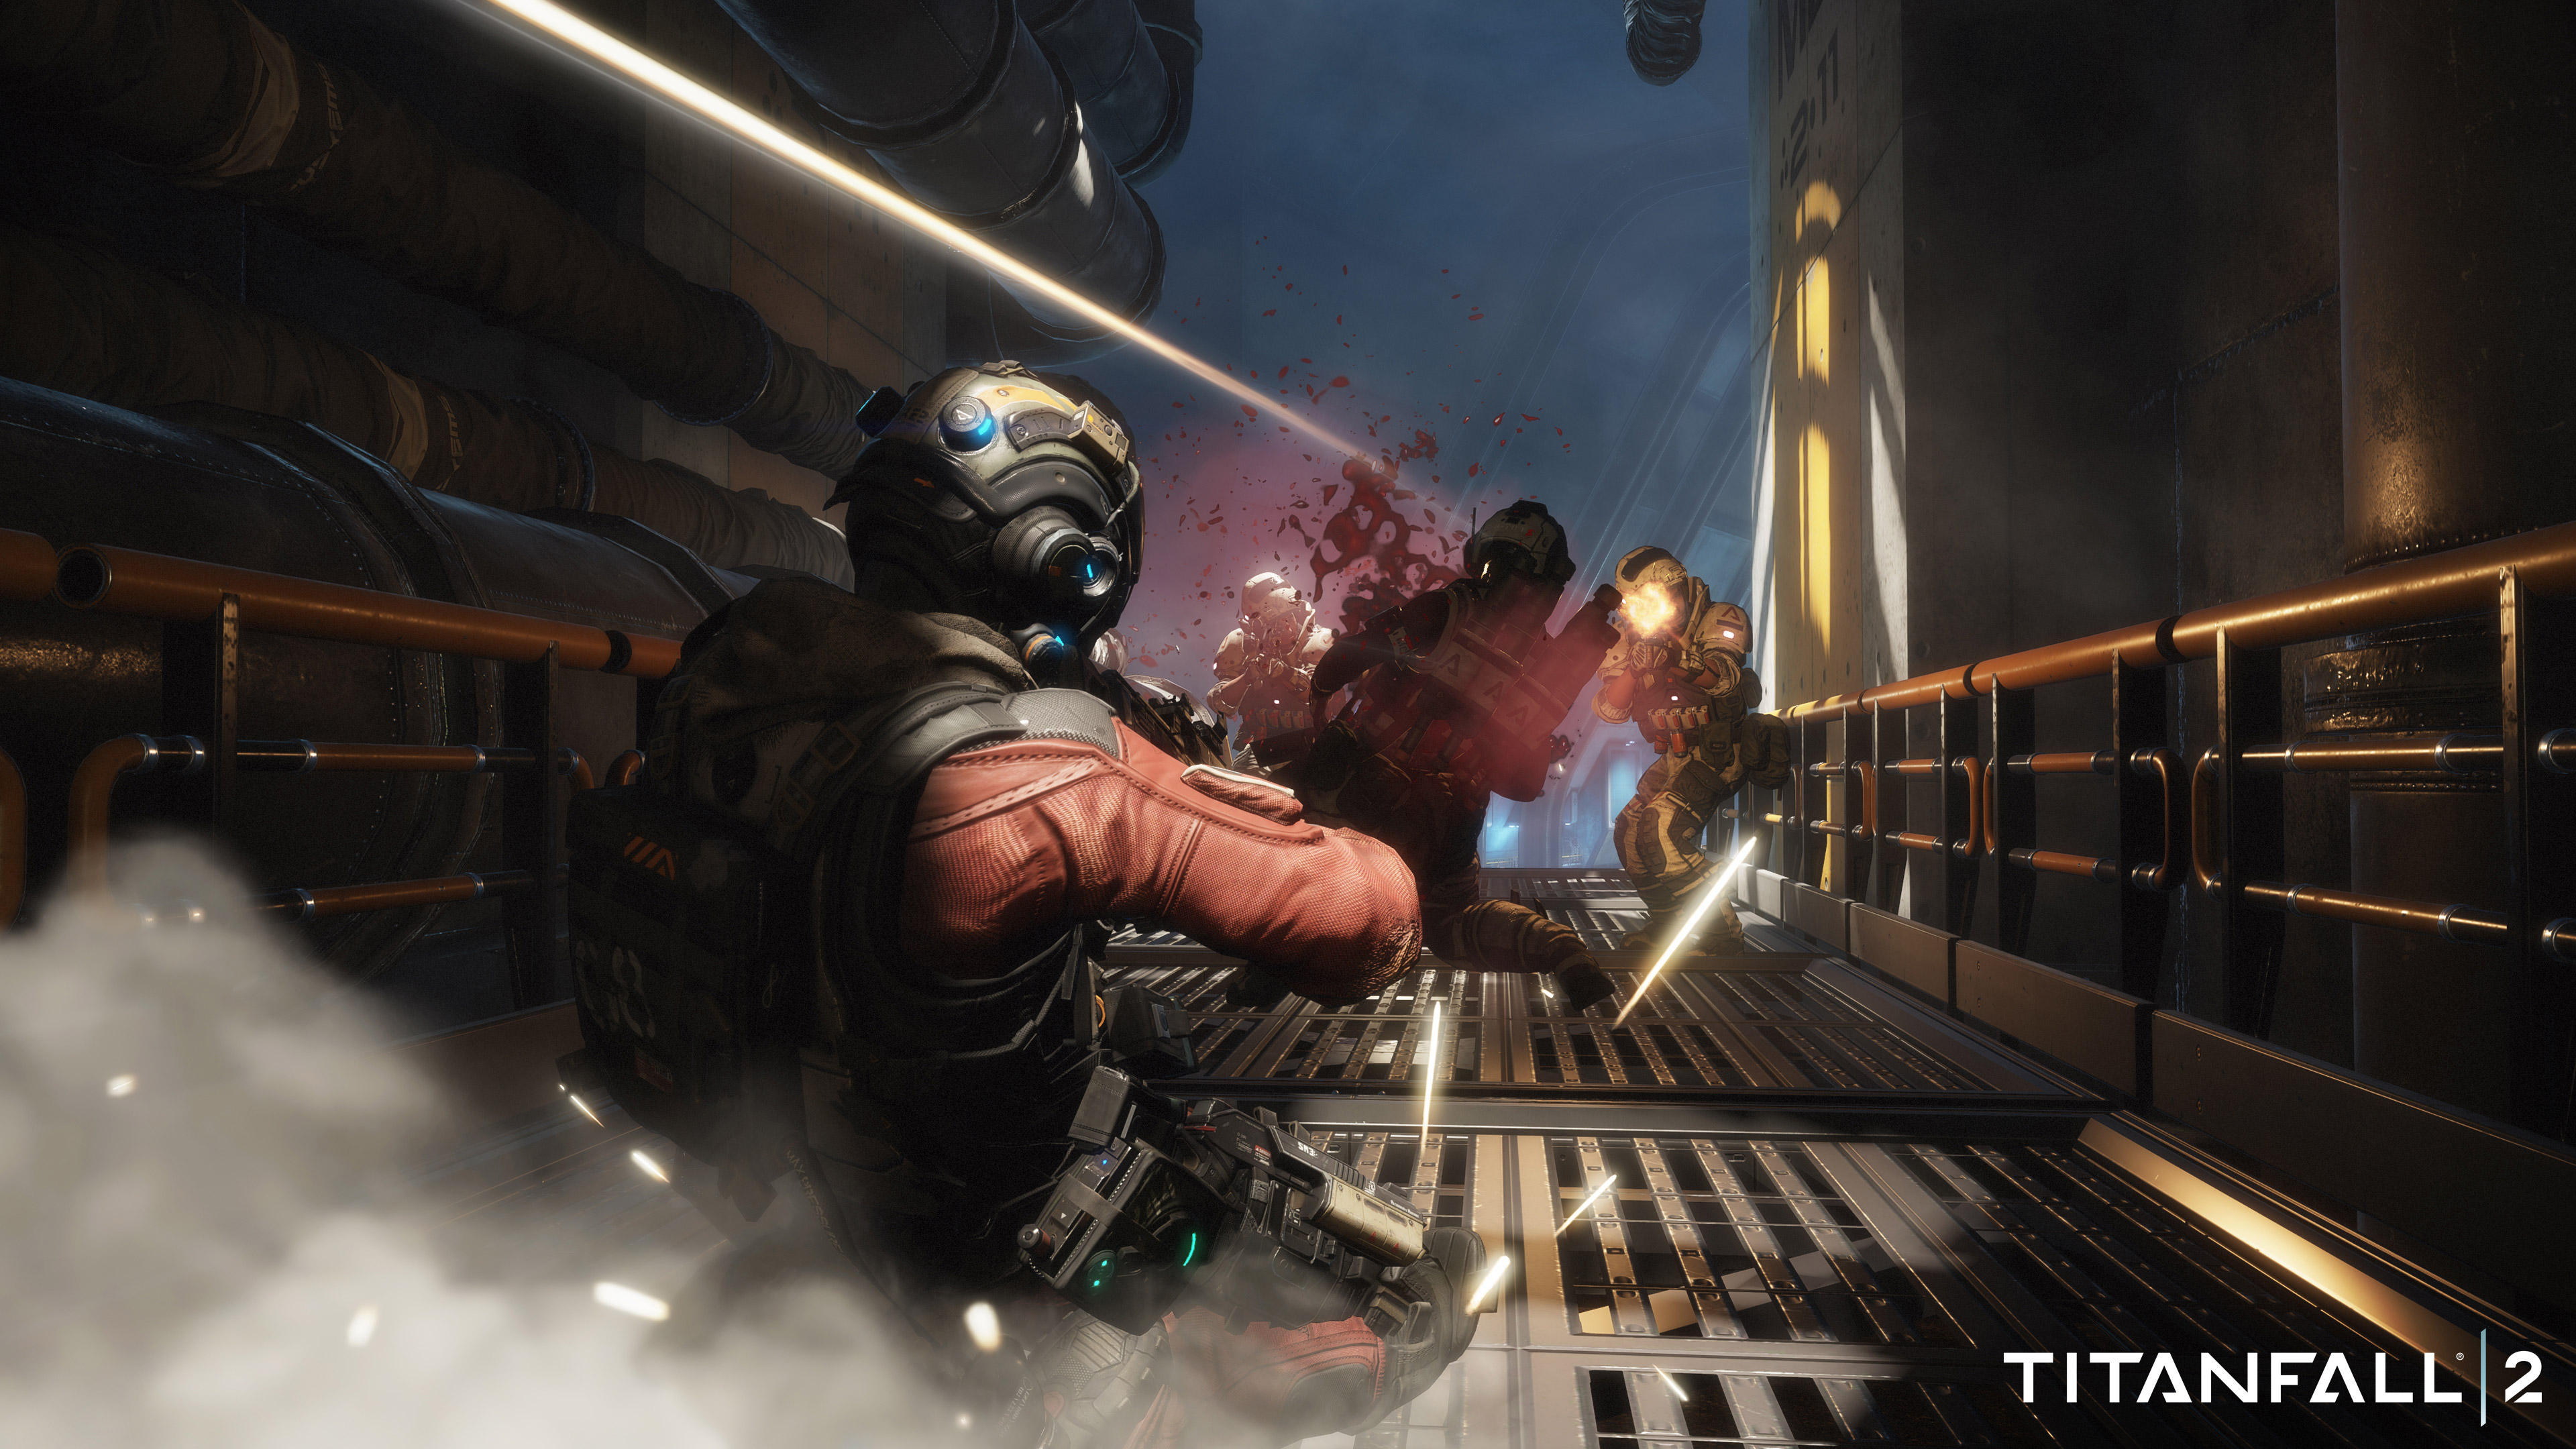 EA Titanfall 2 2016, HD Games, 4k Wallpapers, Images ...